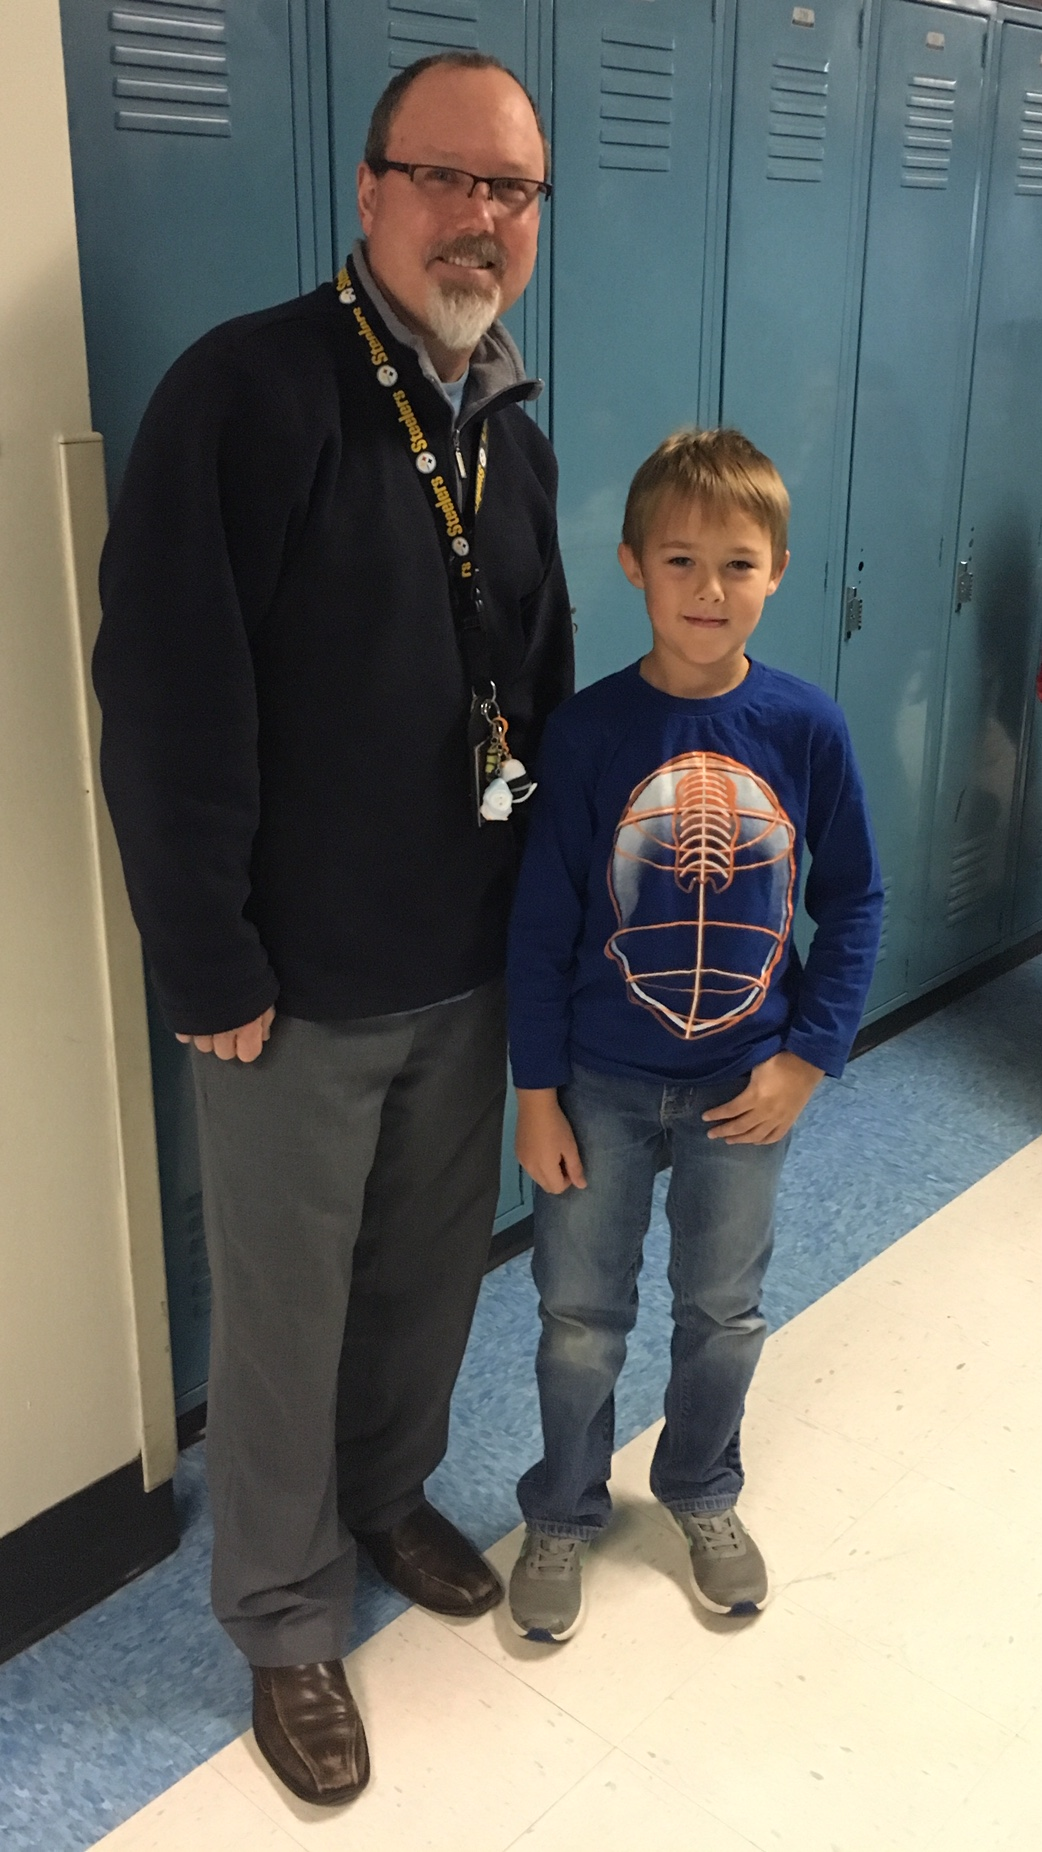 Georgia Elementary Principal Steve Emery smiles as student stands by